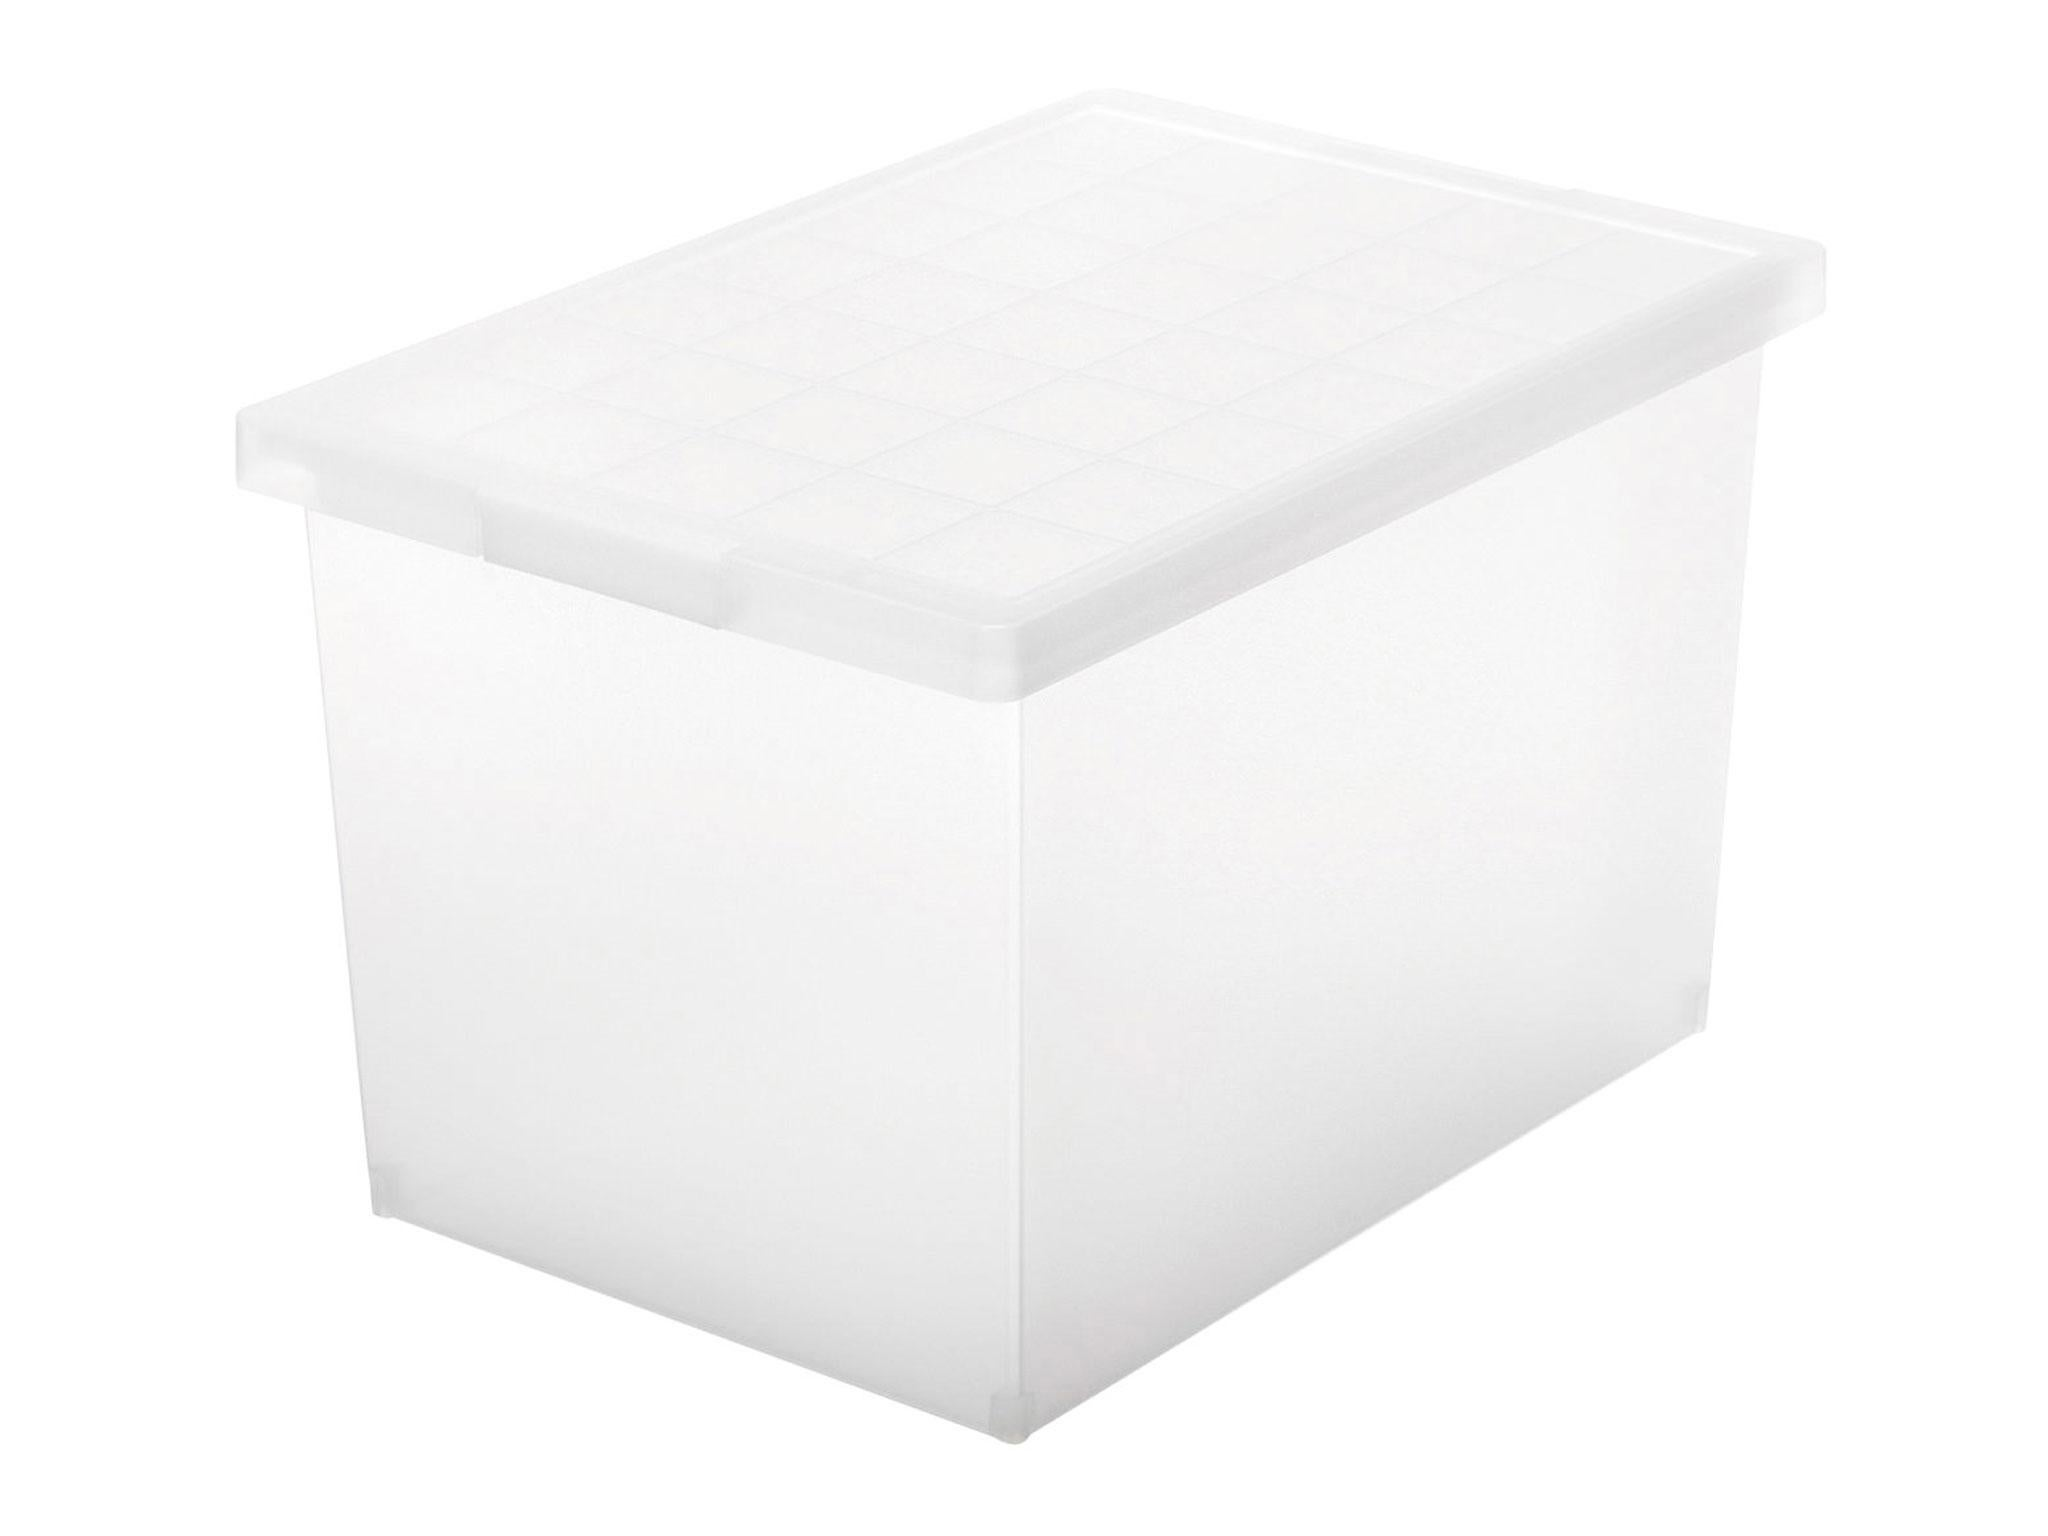 ... Clear Or Translucent Boxes Let You See Whatu0027s Inside, Avoiding Having  To Root Around For What You Need. They Make The Most Sense For Long Term  Storage.